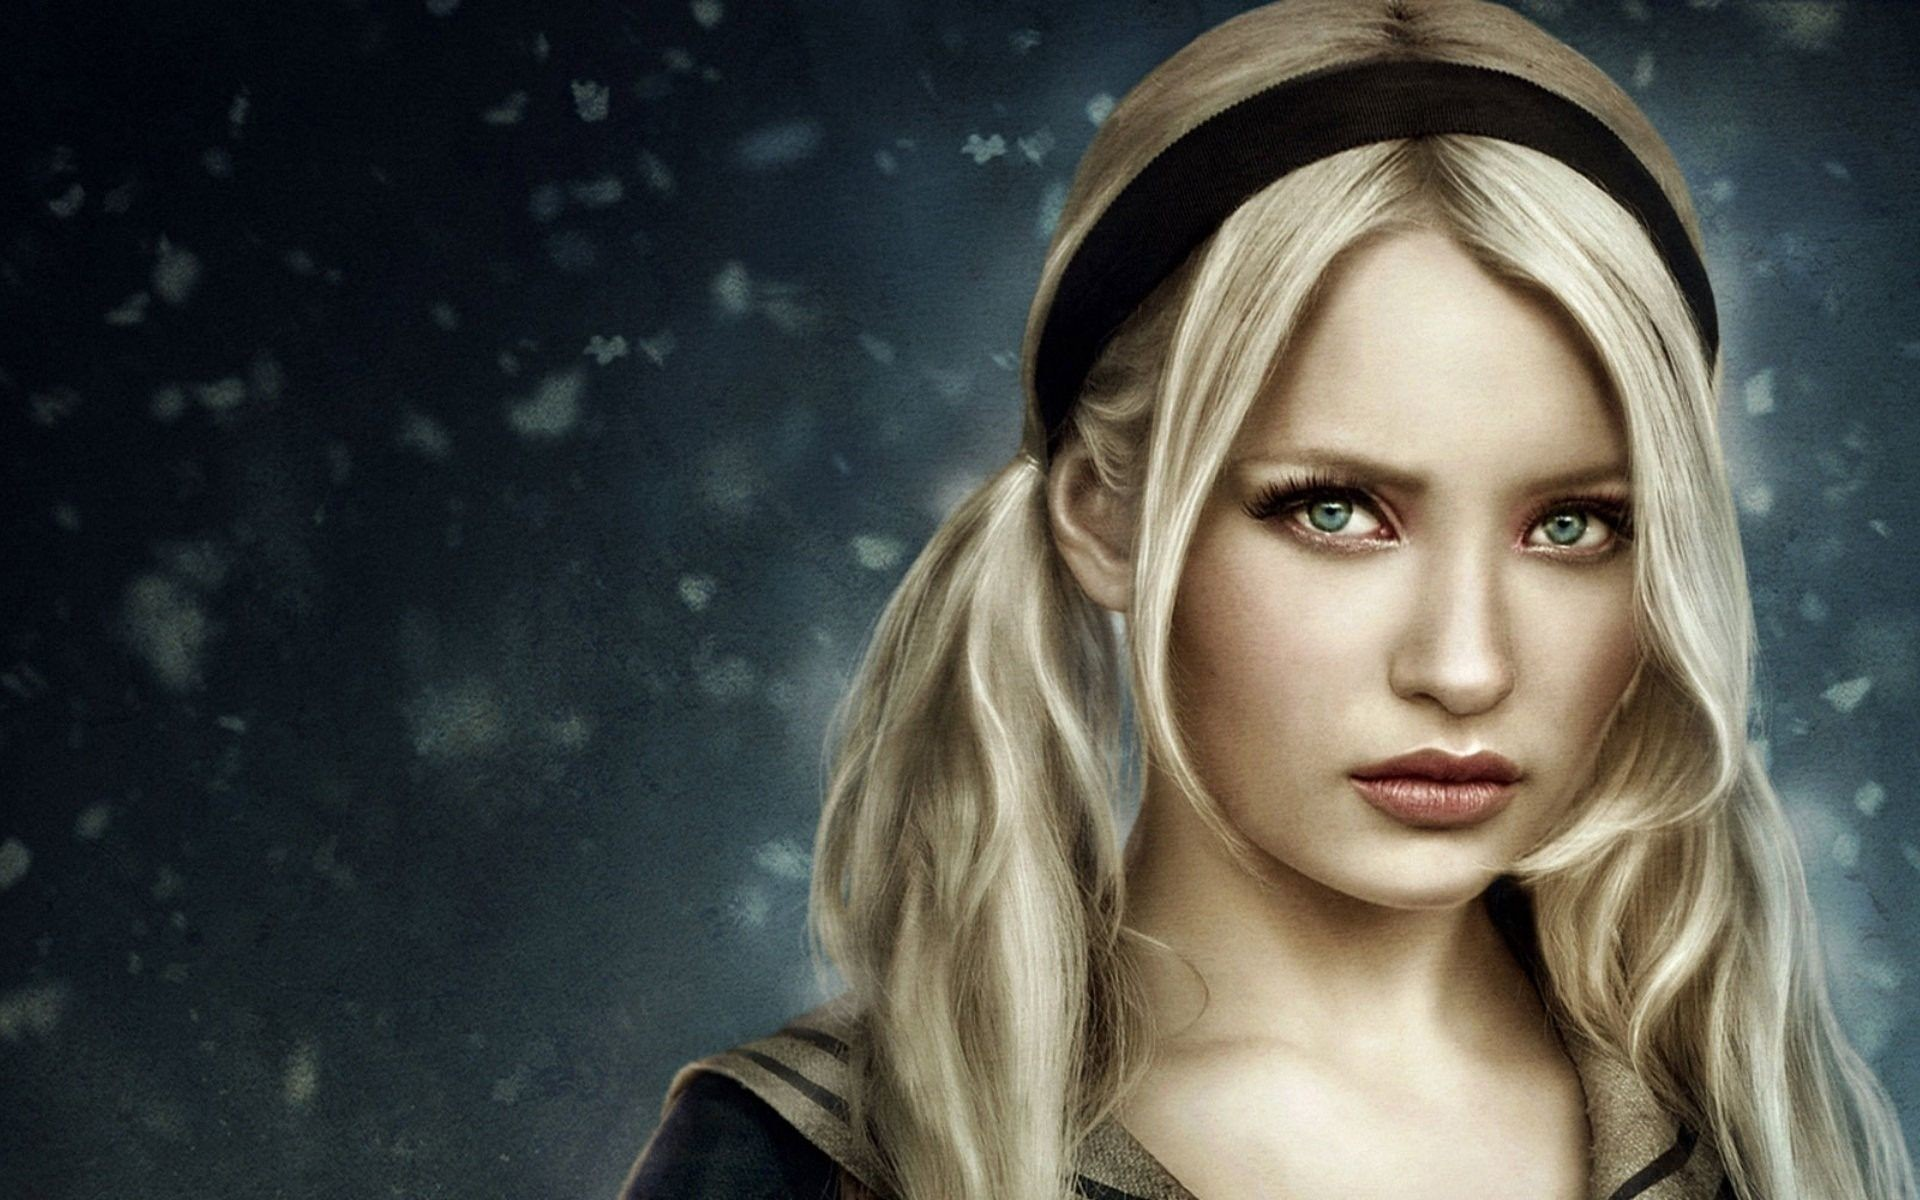 1920x1200 Emily Browning in Sucker Punch wallpapers Wallpapers) – Art Wallpapers